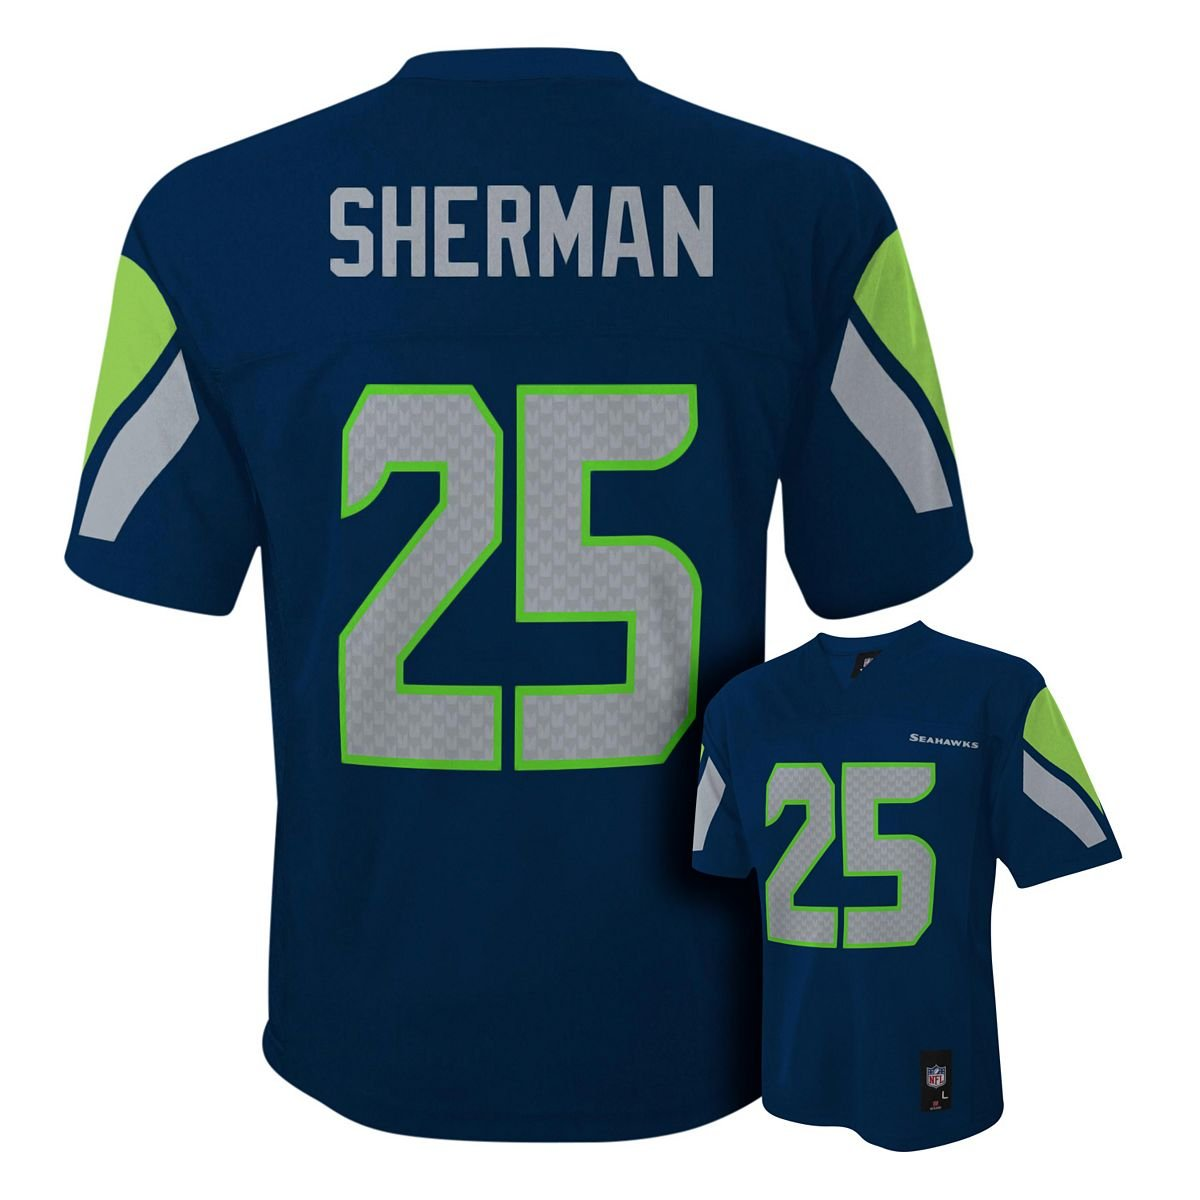 sale retailer ac2c4 98401 Amazon.com: Richard Sherman Seattle Seahawks #25 Navy NFL ...